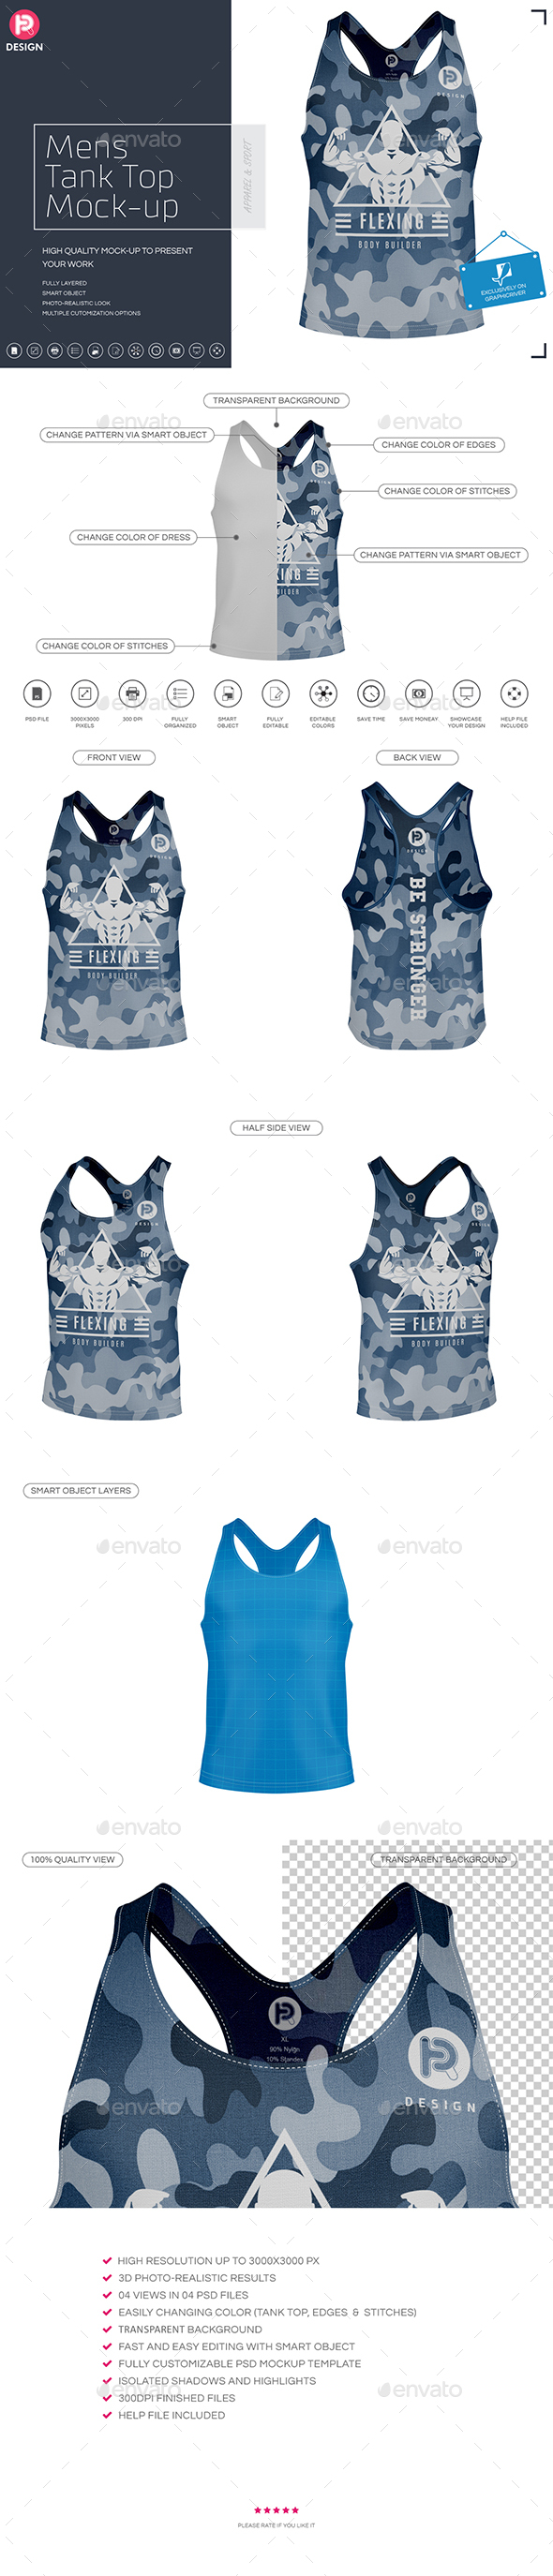 Mens Tank Top Mock-up - Miscellaneous Apparel